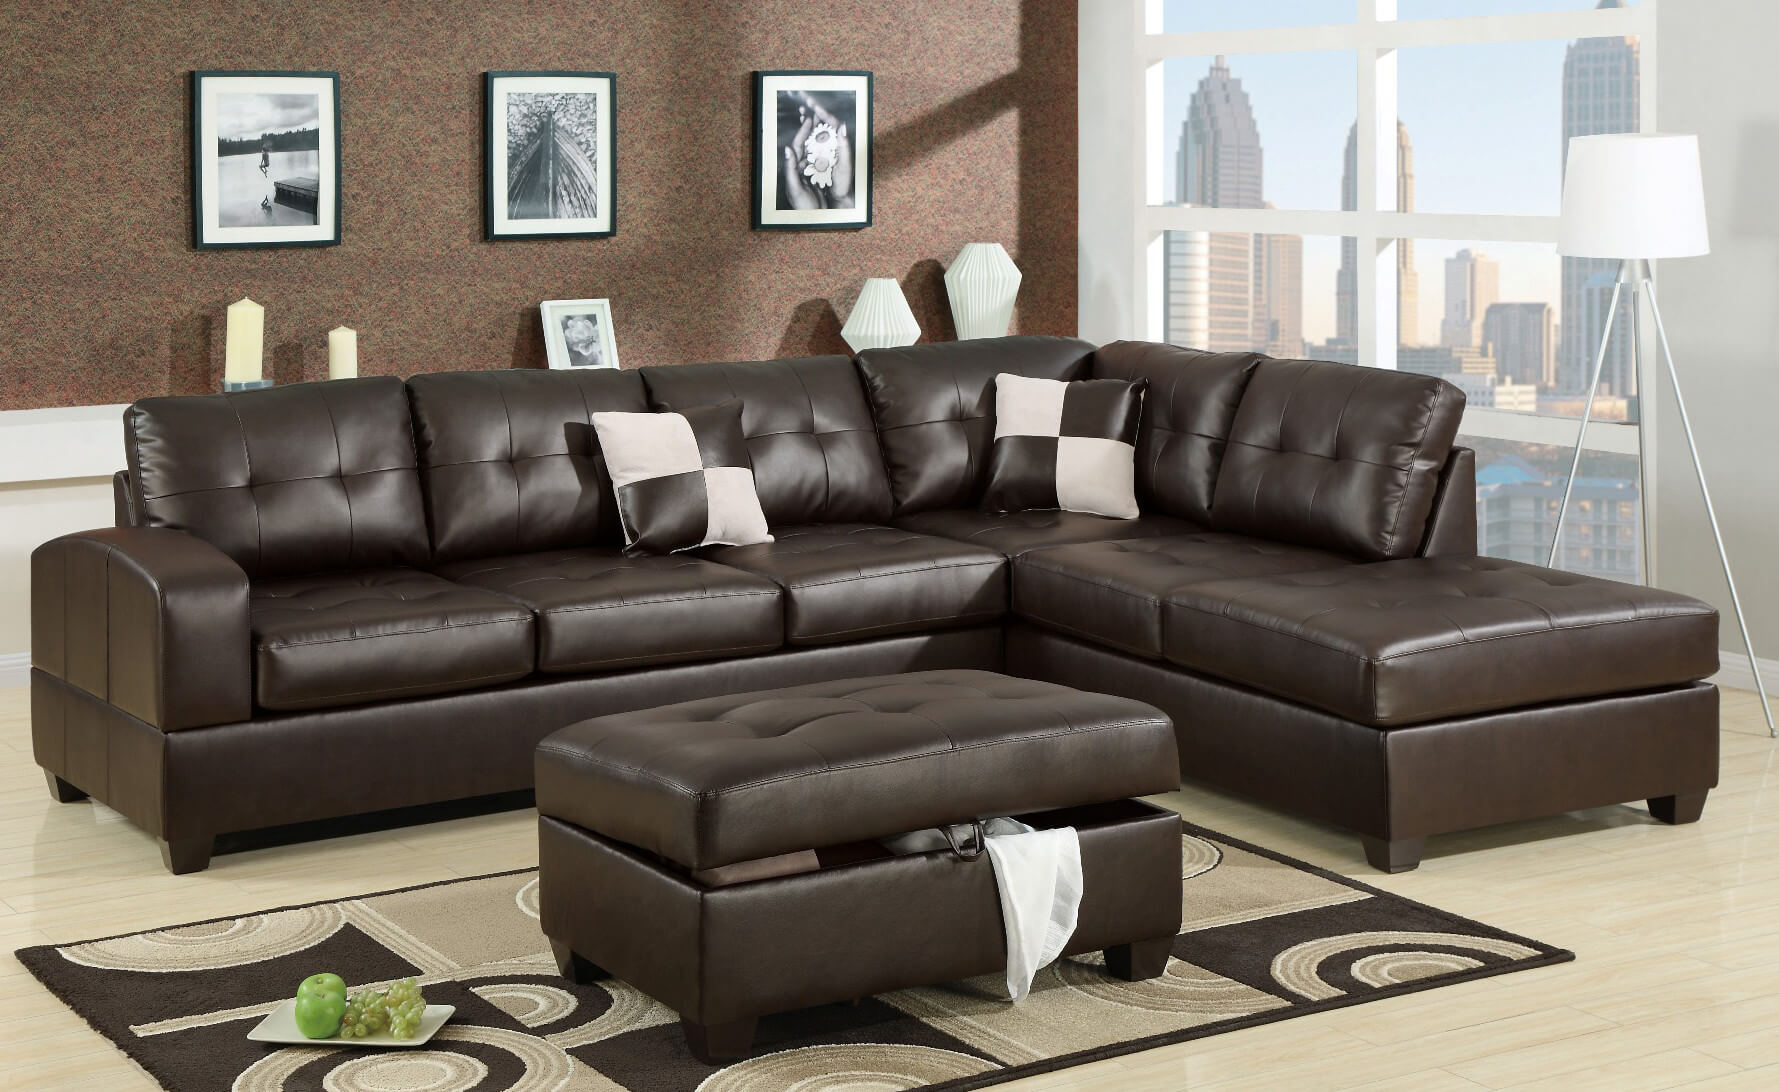 Cheap Sectional Couches | Leather Sectional Sofa | Bobs Furniture Living  Room Sets